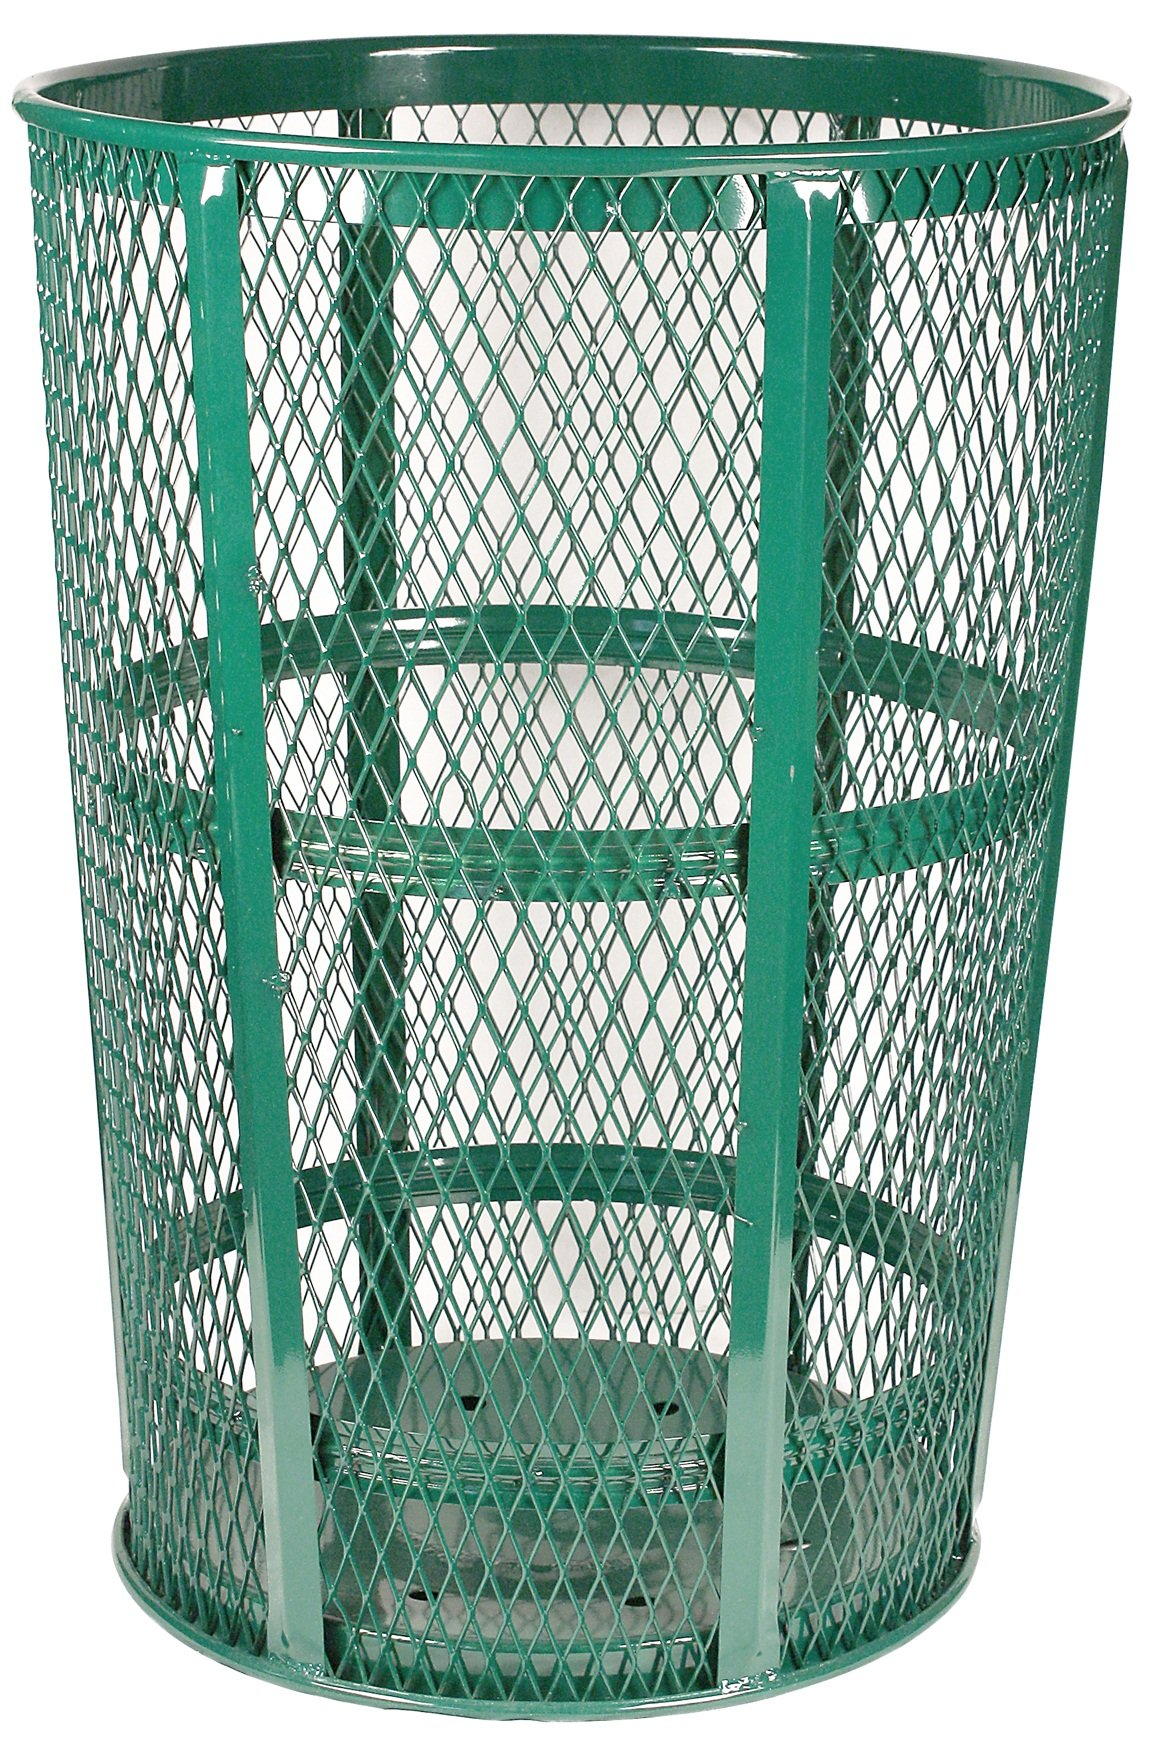 Witt Industries EXP-52GN Steel 48-Gallon Outdoor Waste Receptacle, Round, 23'' Diameter x 33'' Height, Green